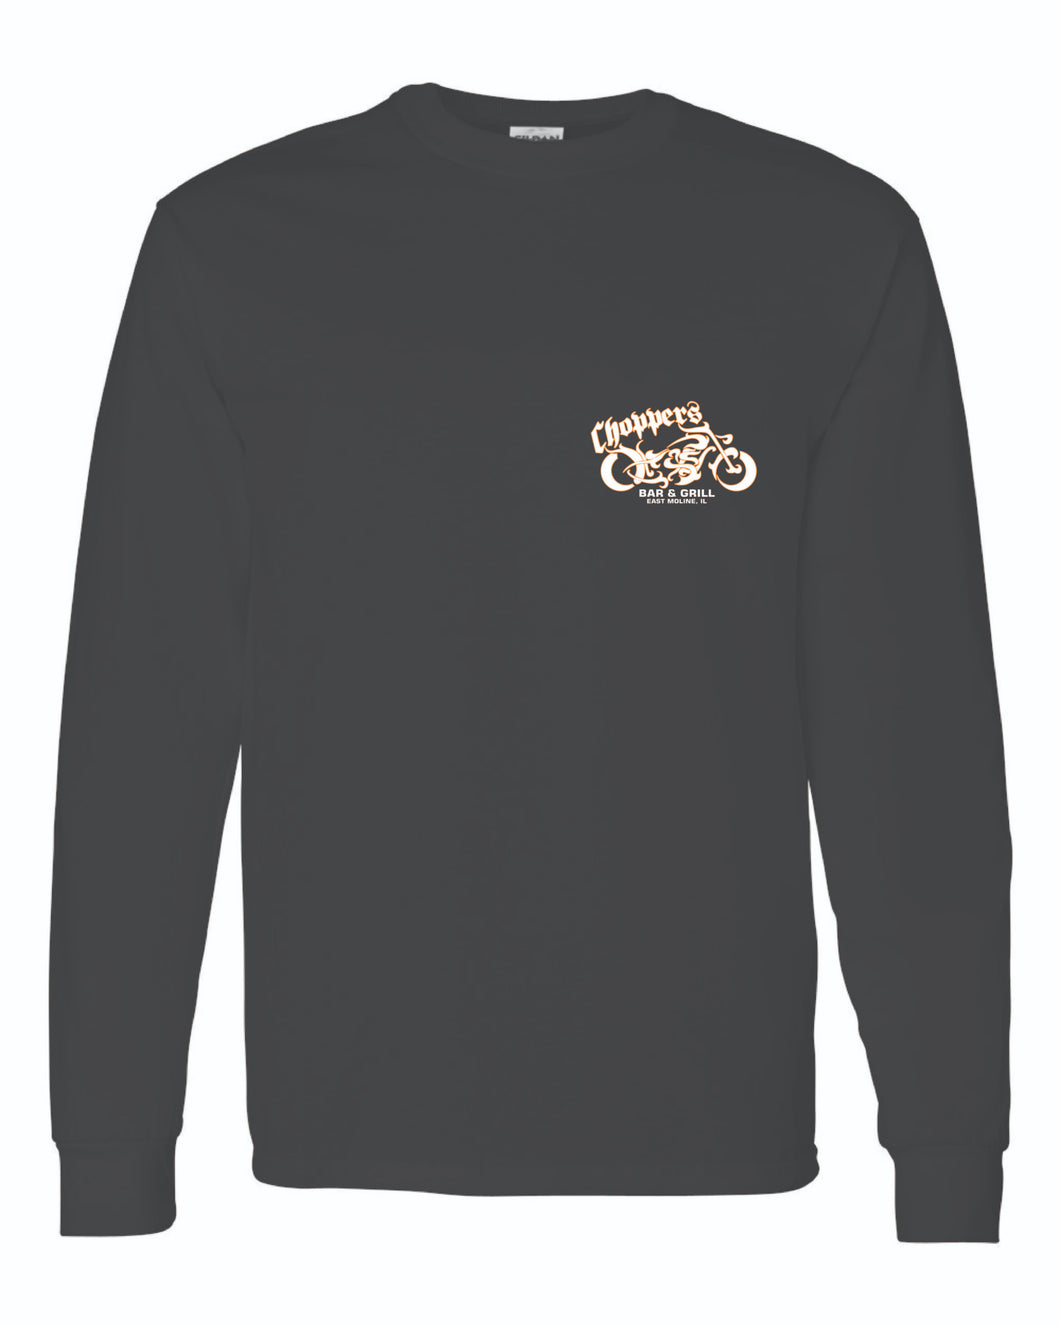 Chopper's - Long Sleeve T-shirt